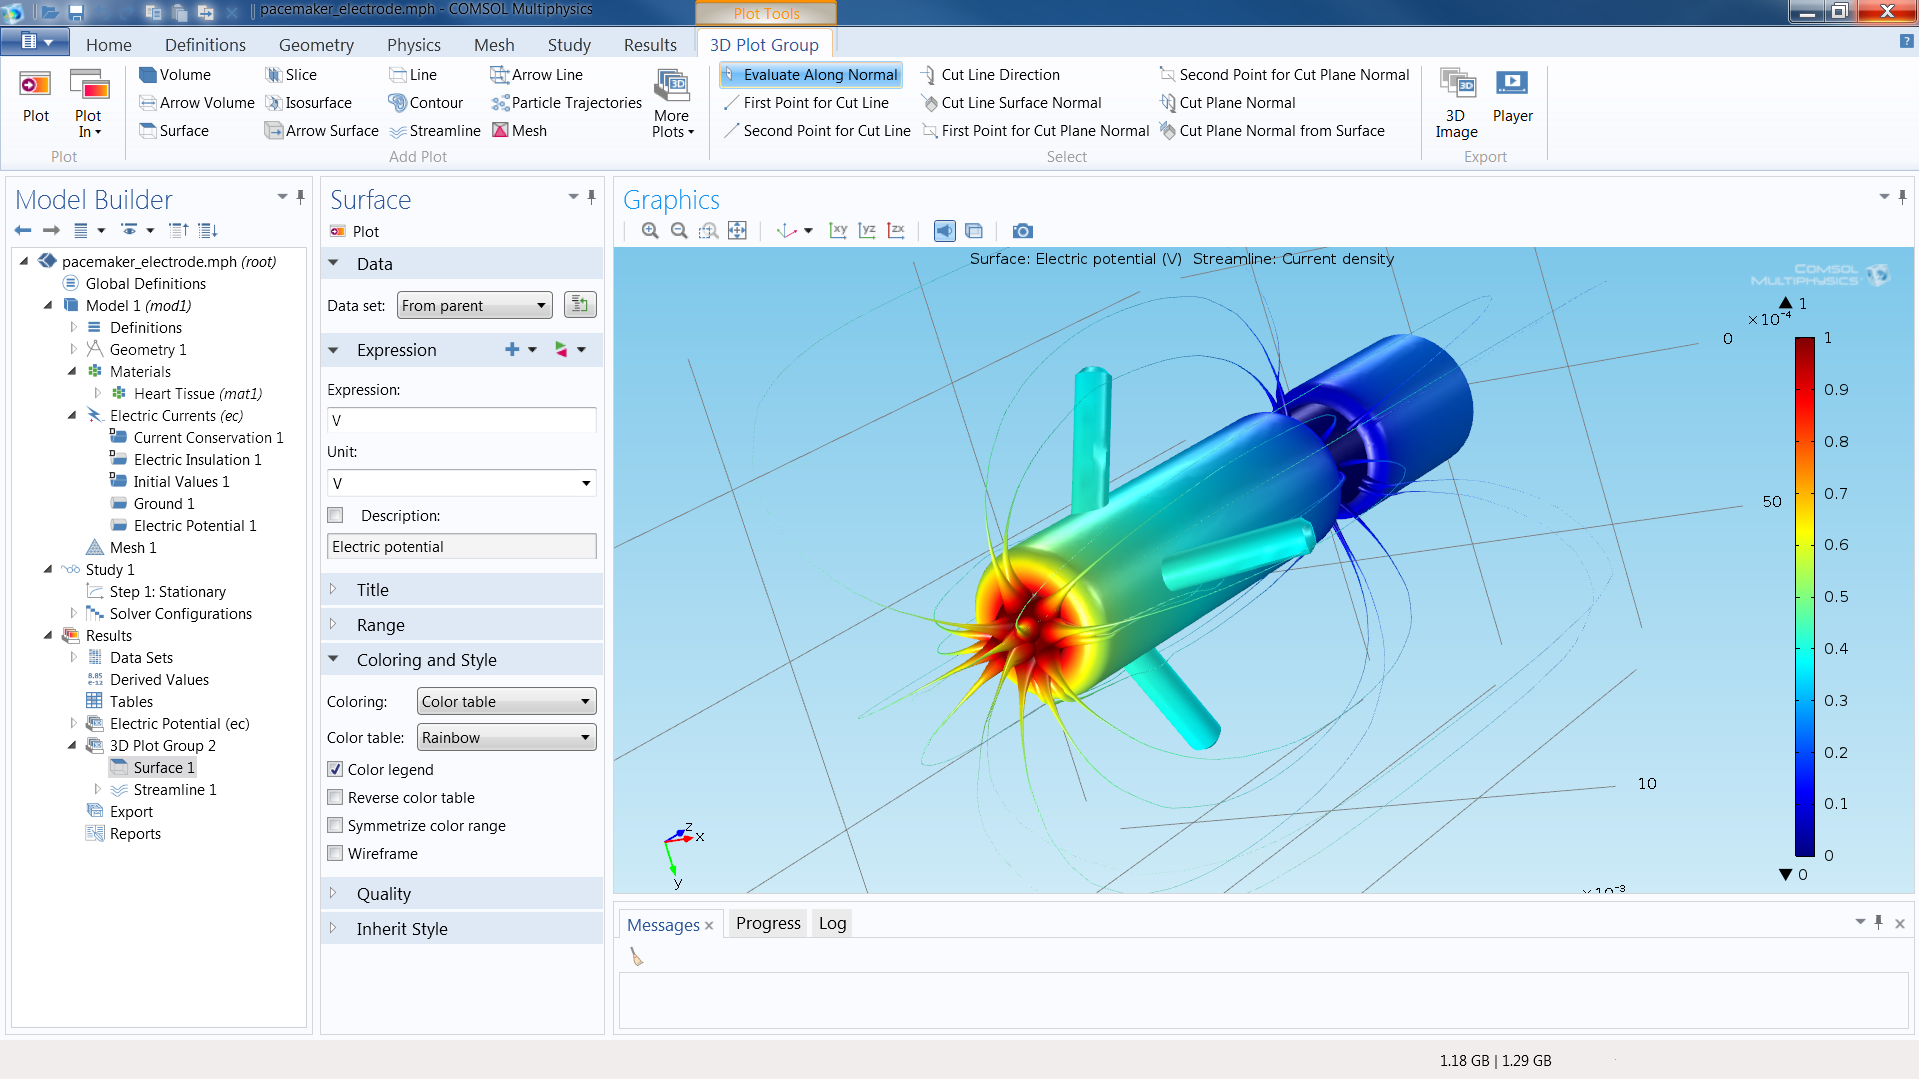 COMSOL Desktop®: An electrical simulation of a pacemaker electrode with computed voltage and current distribution.